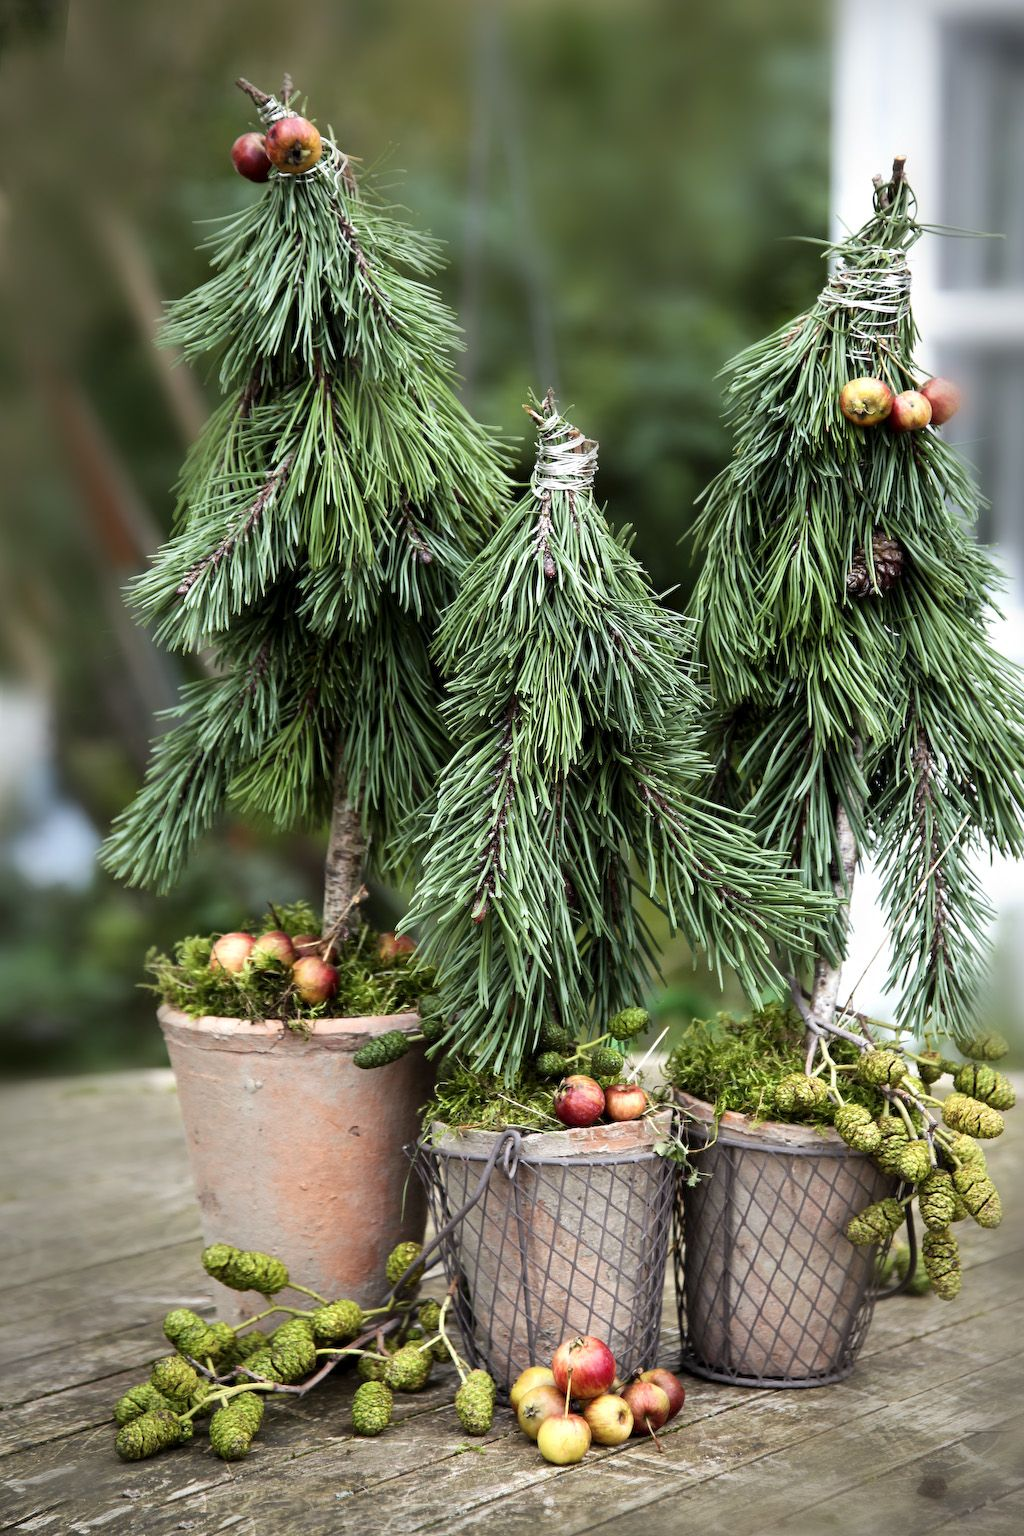 Pin by Susanne Schleussner on Creative Ideas | Pinterest | Christmas ...